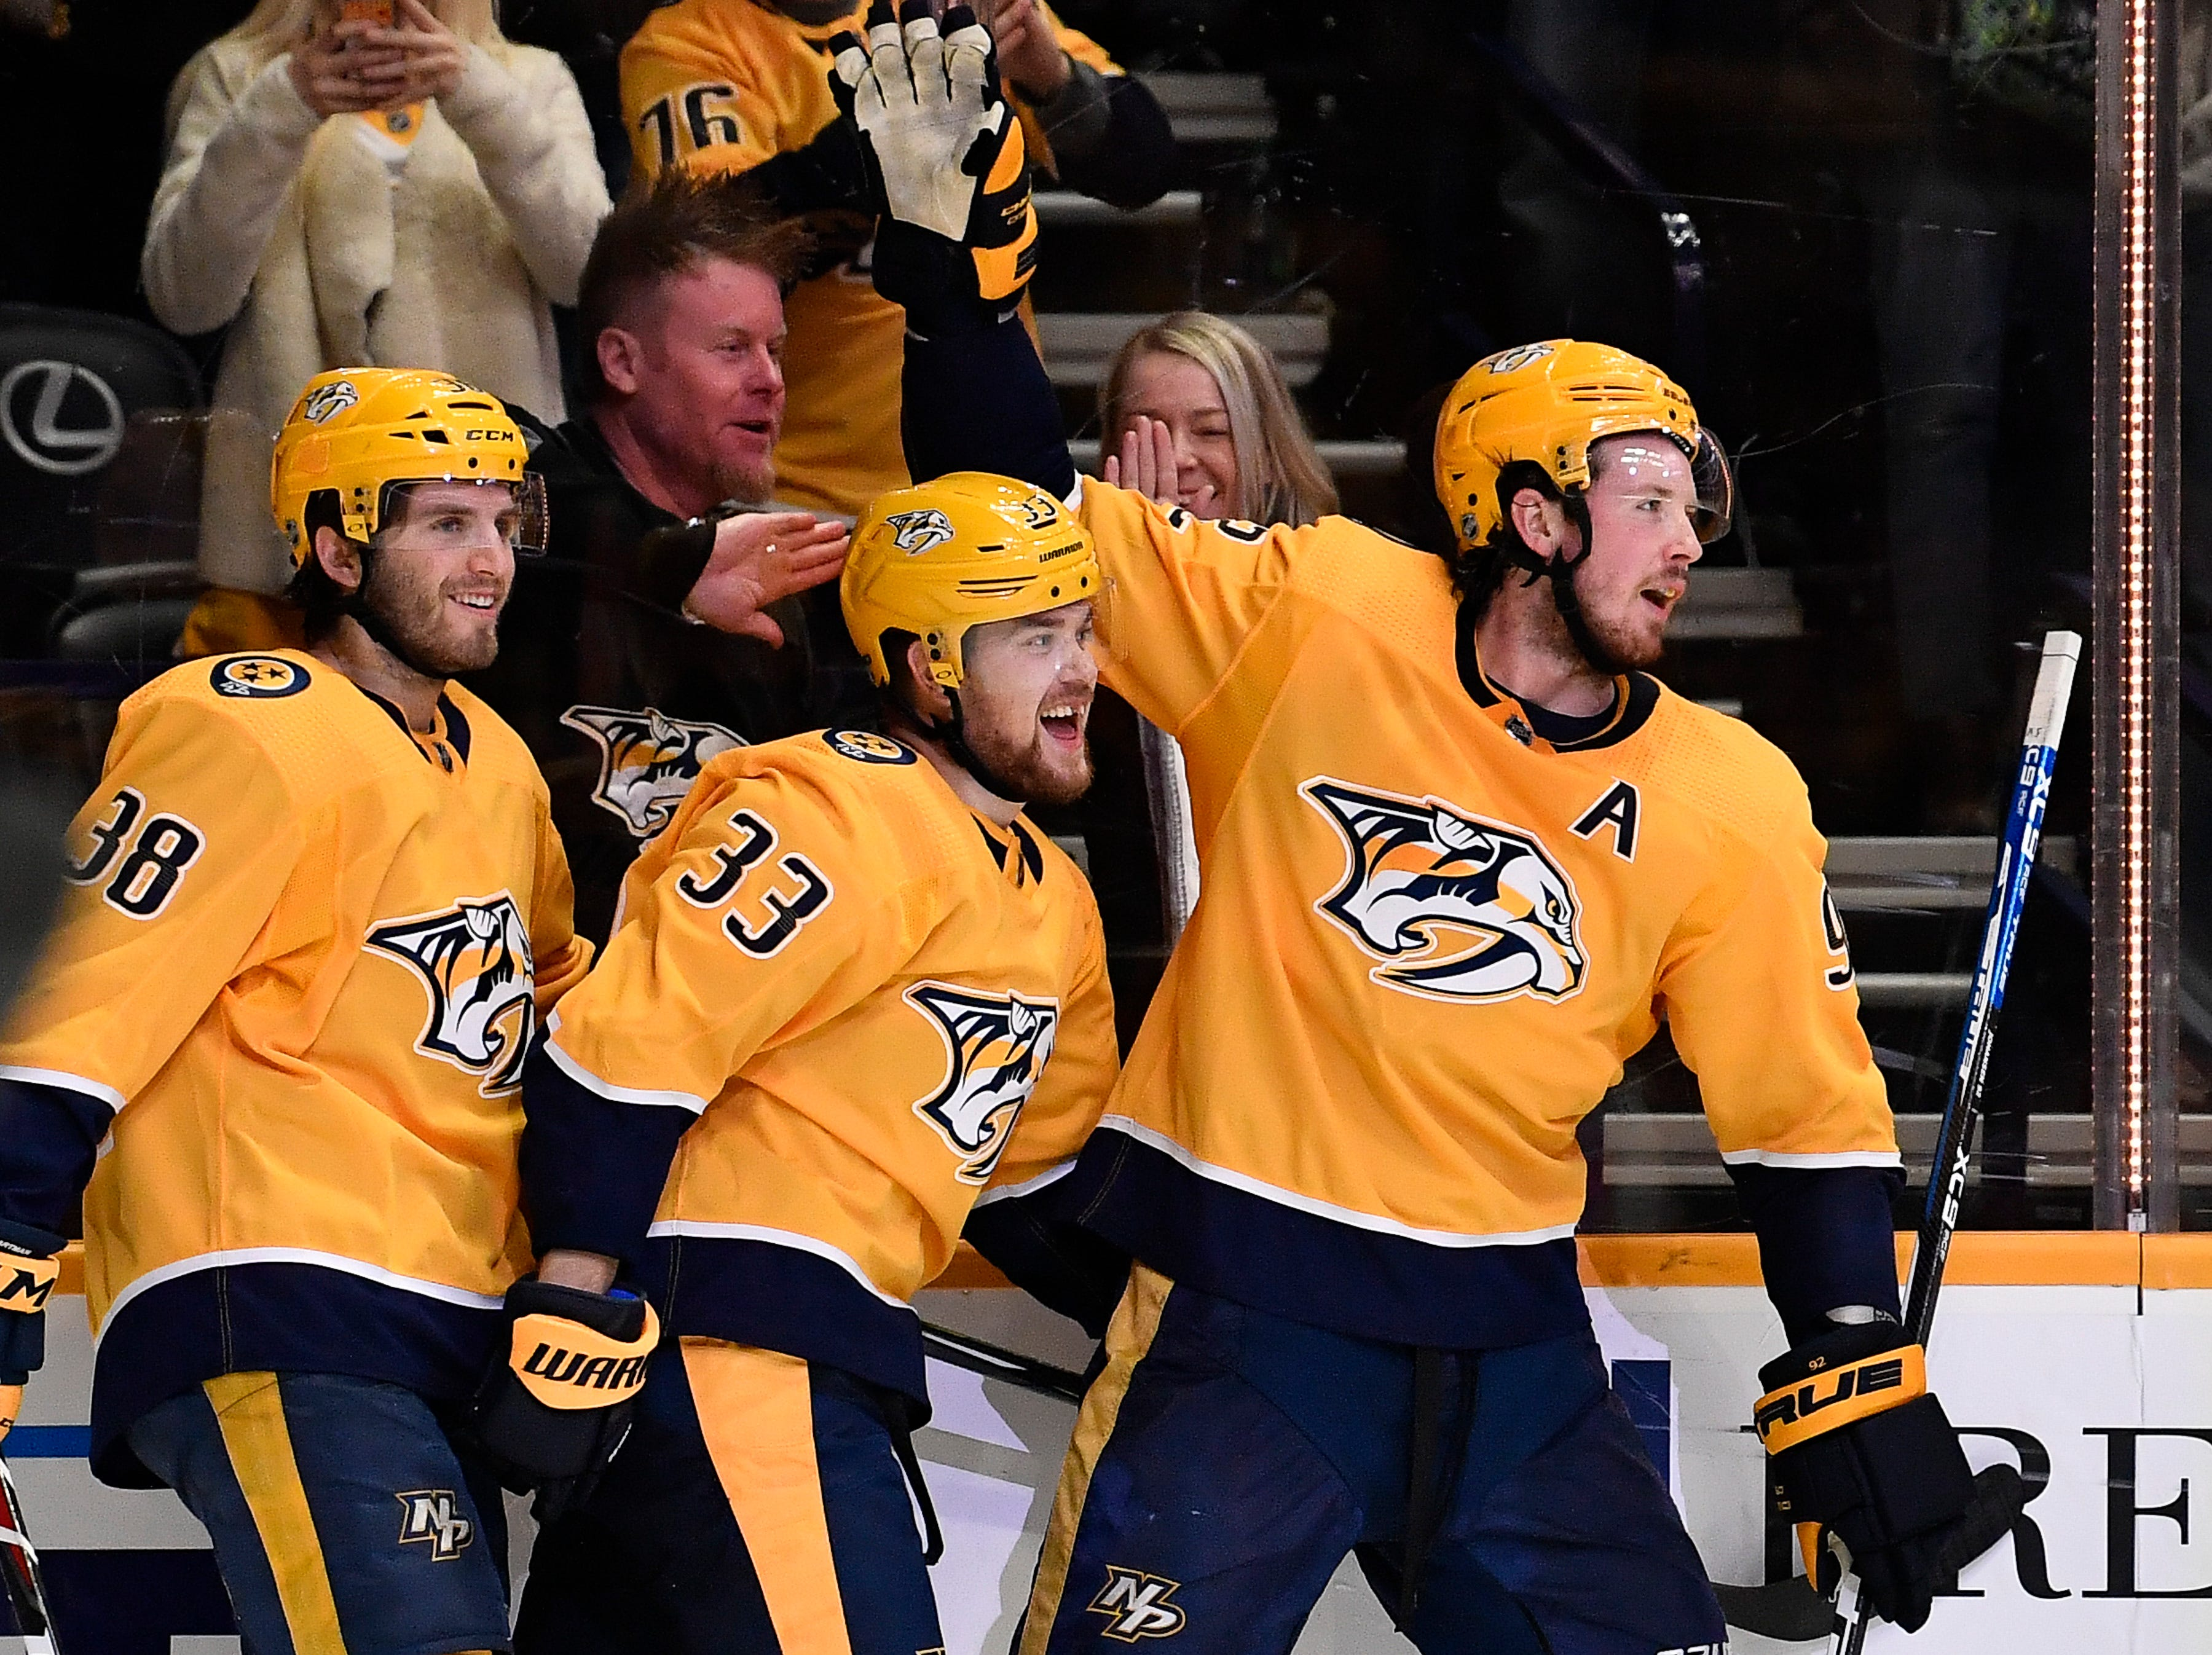 Predators Ryan Hartman (38) and Ryan Johansen (92) congratulate right wing Viktor Arvidsson (33) after his goal during the third period against the Flyers at Bridgestone Arena Tuesday, Jan. 1, 2019, in Nashville, Tenn.